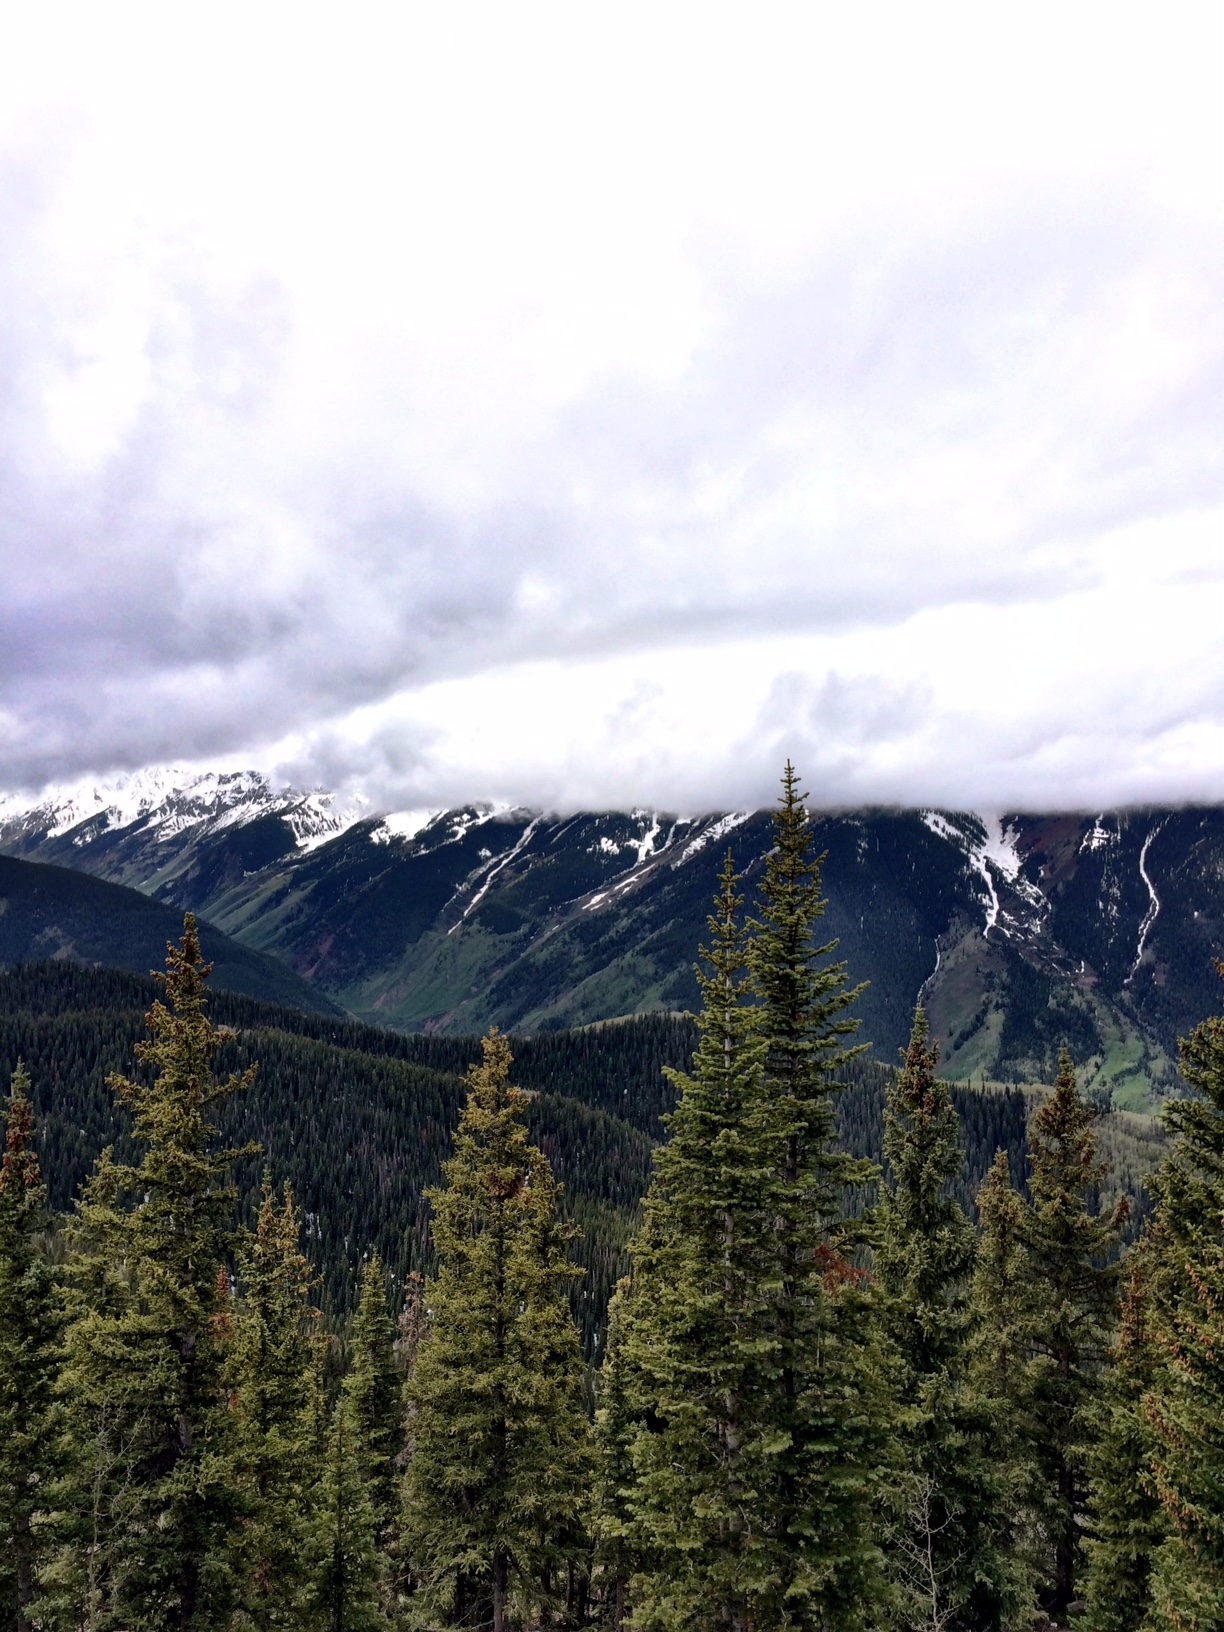 Postcards from Aspen: A Photo Diary